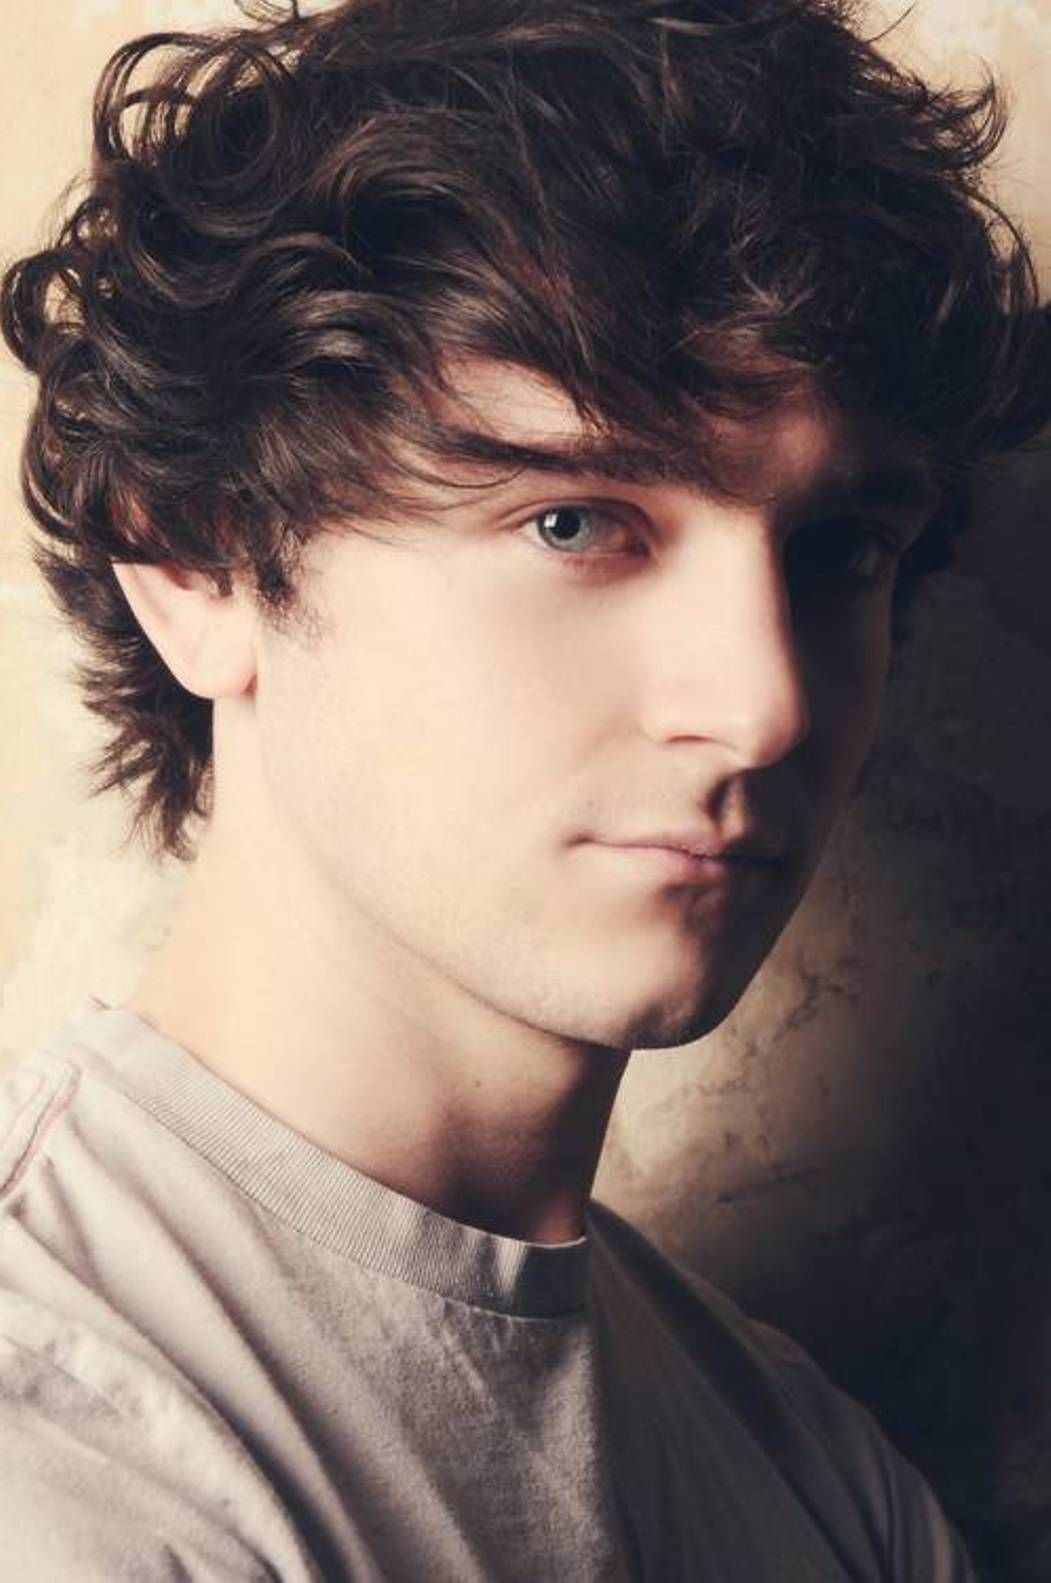 Teenage Curly Hair Styles For Men Teenages Hair VictorHugoHair - Men's hairstyle gallery 2014